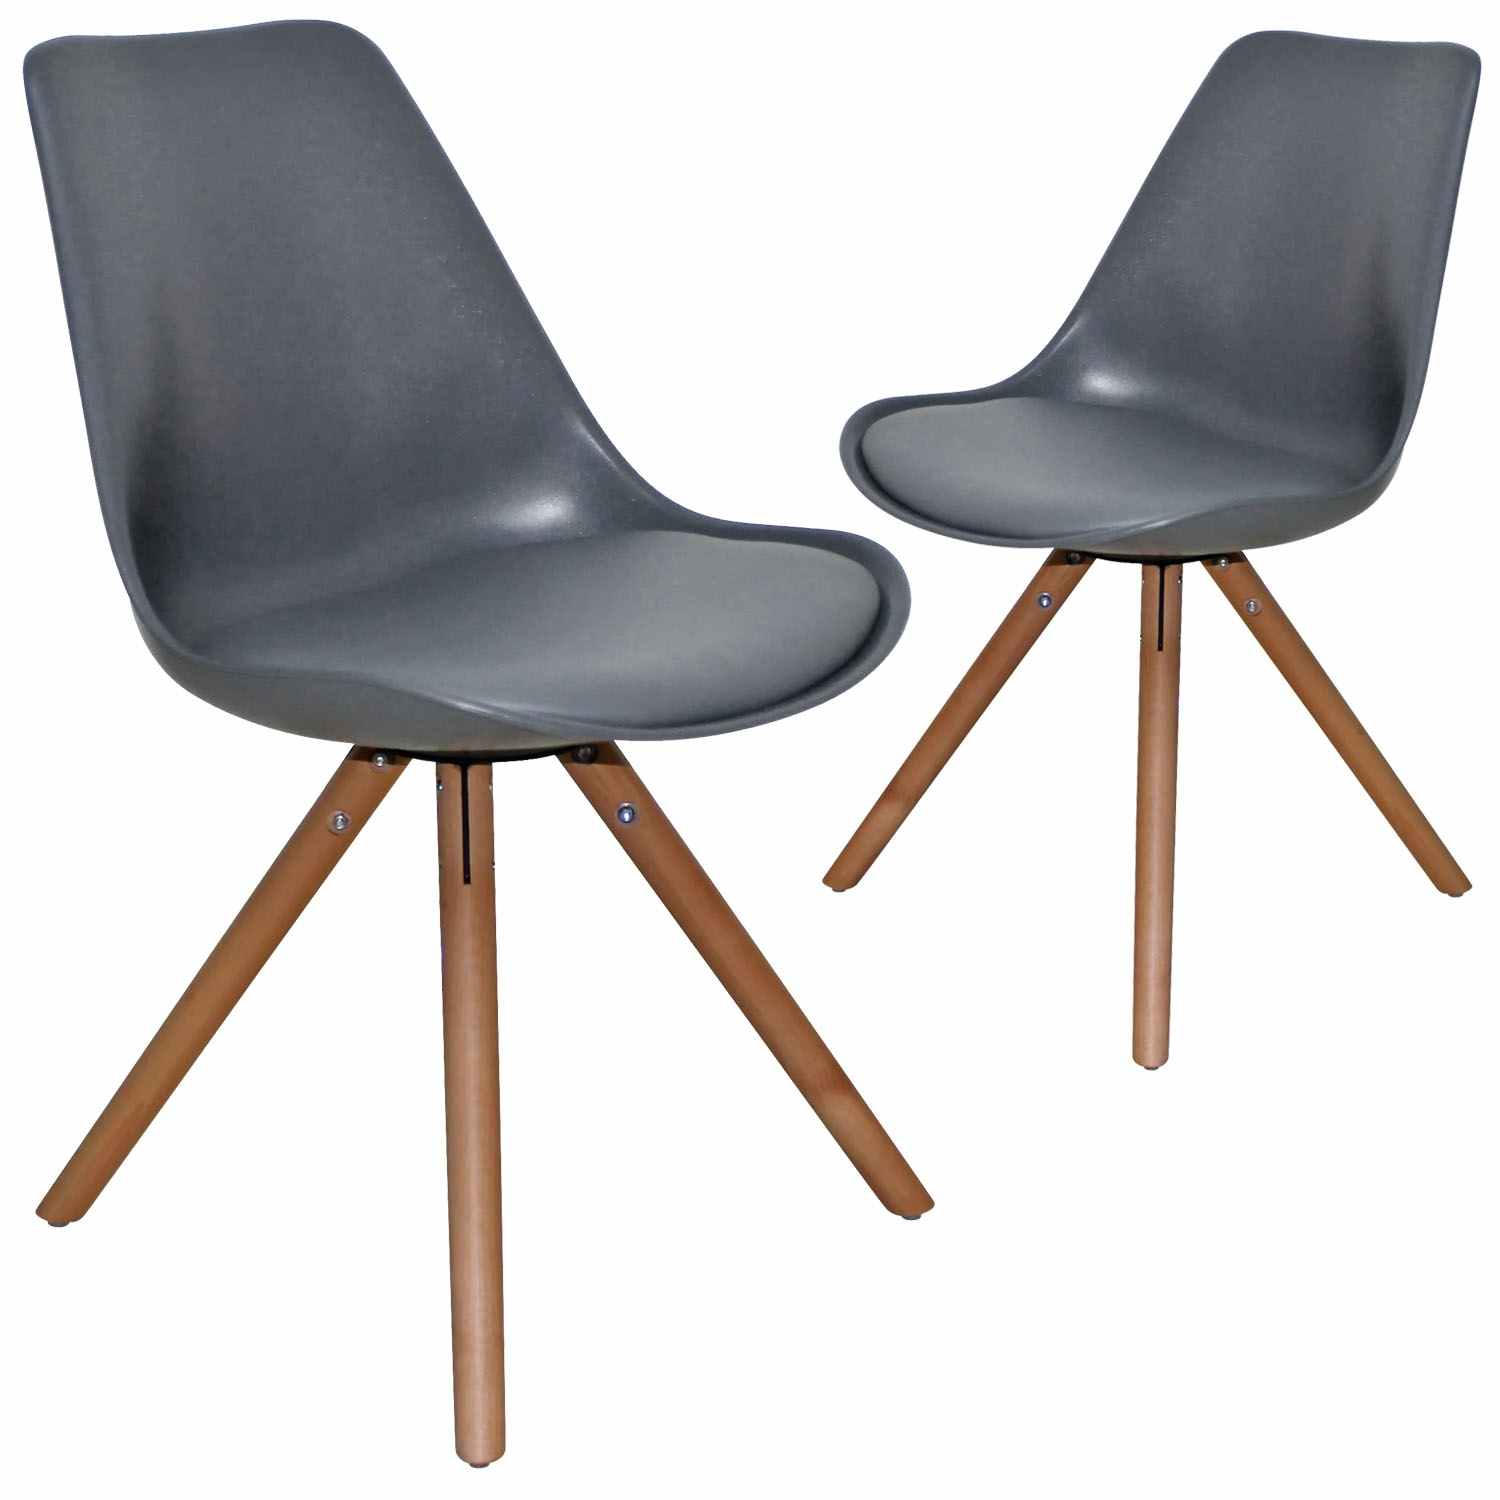 Deco in paris 4 lot de 2 chaises design gris velta velta - Chaises design grises ...